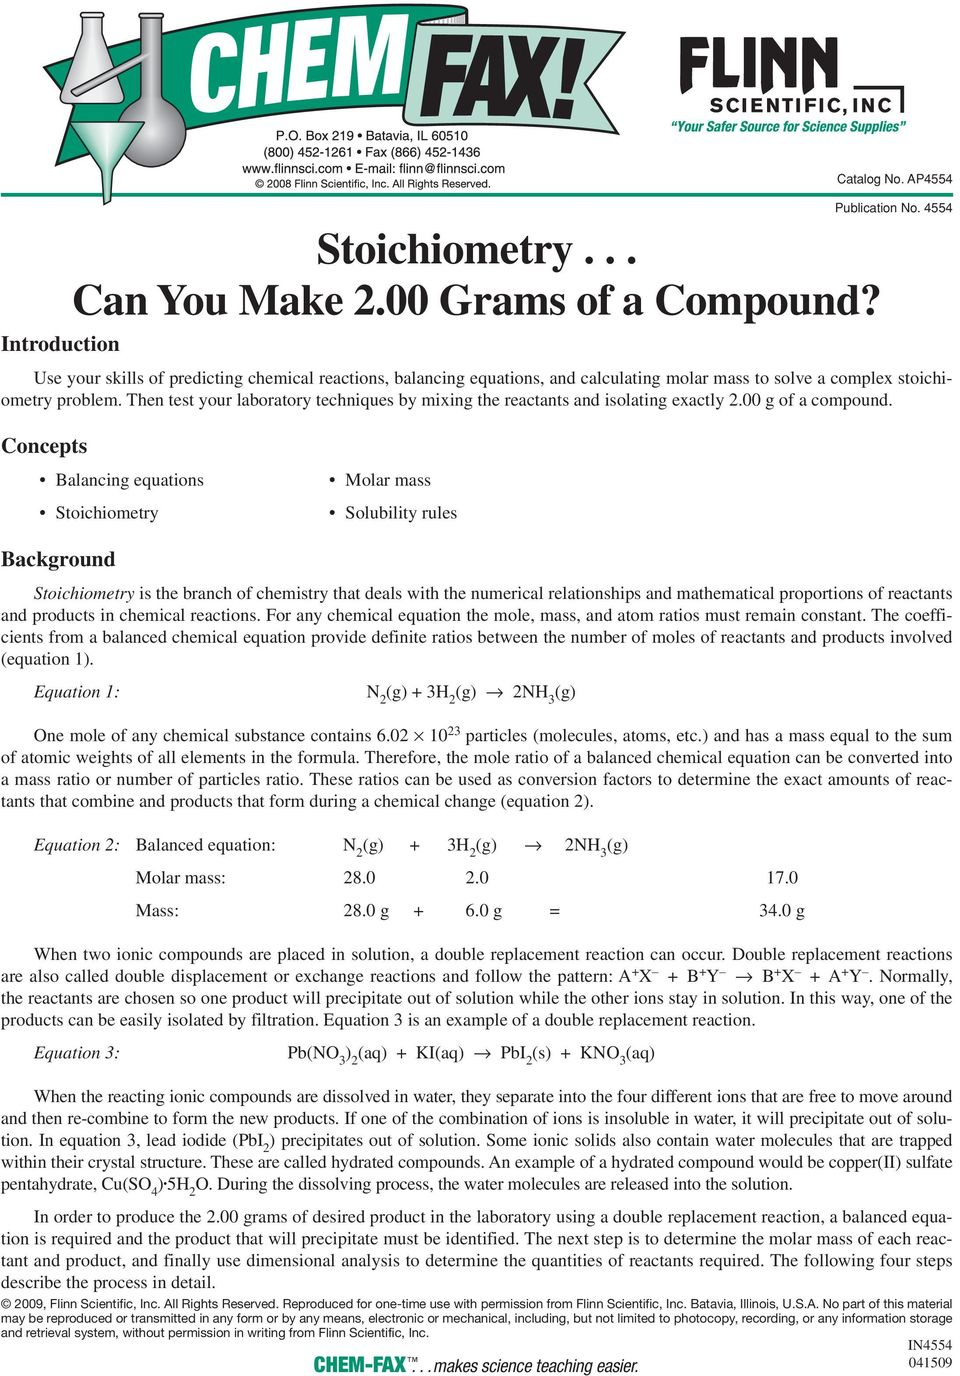 Stoichiometry. Can You Make 2.00 Grams of a Compound? - PDF